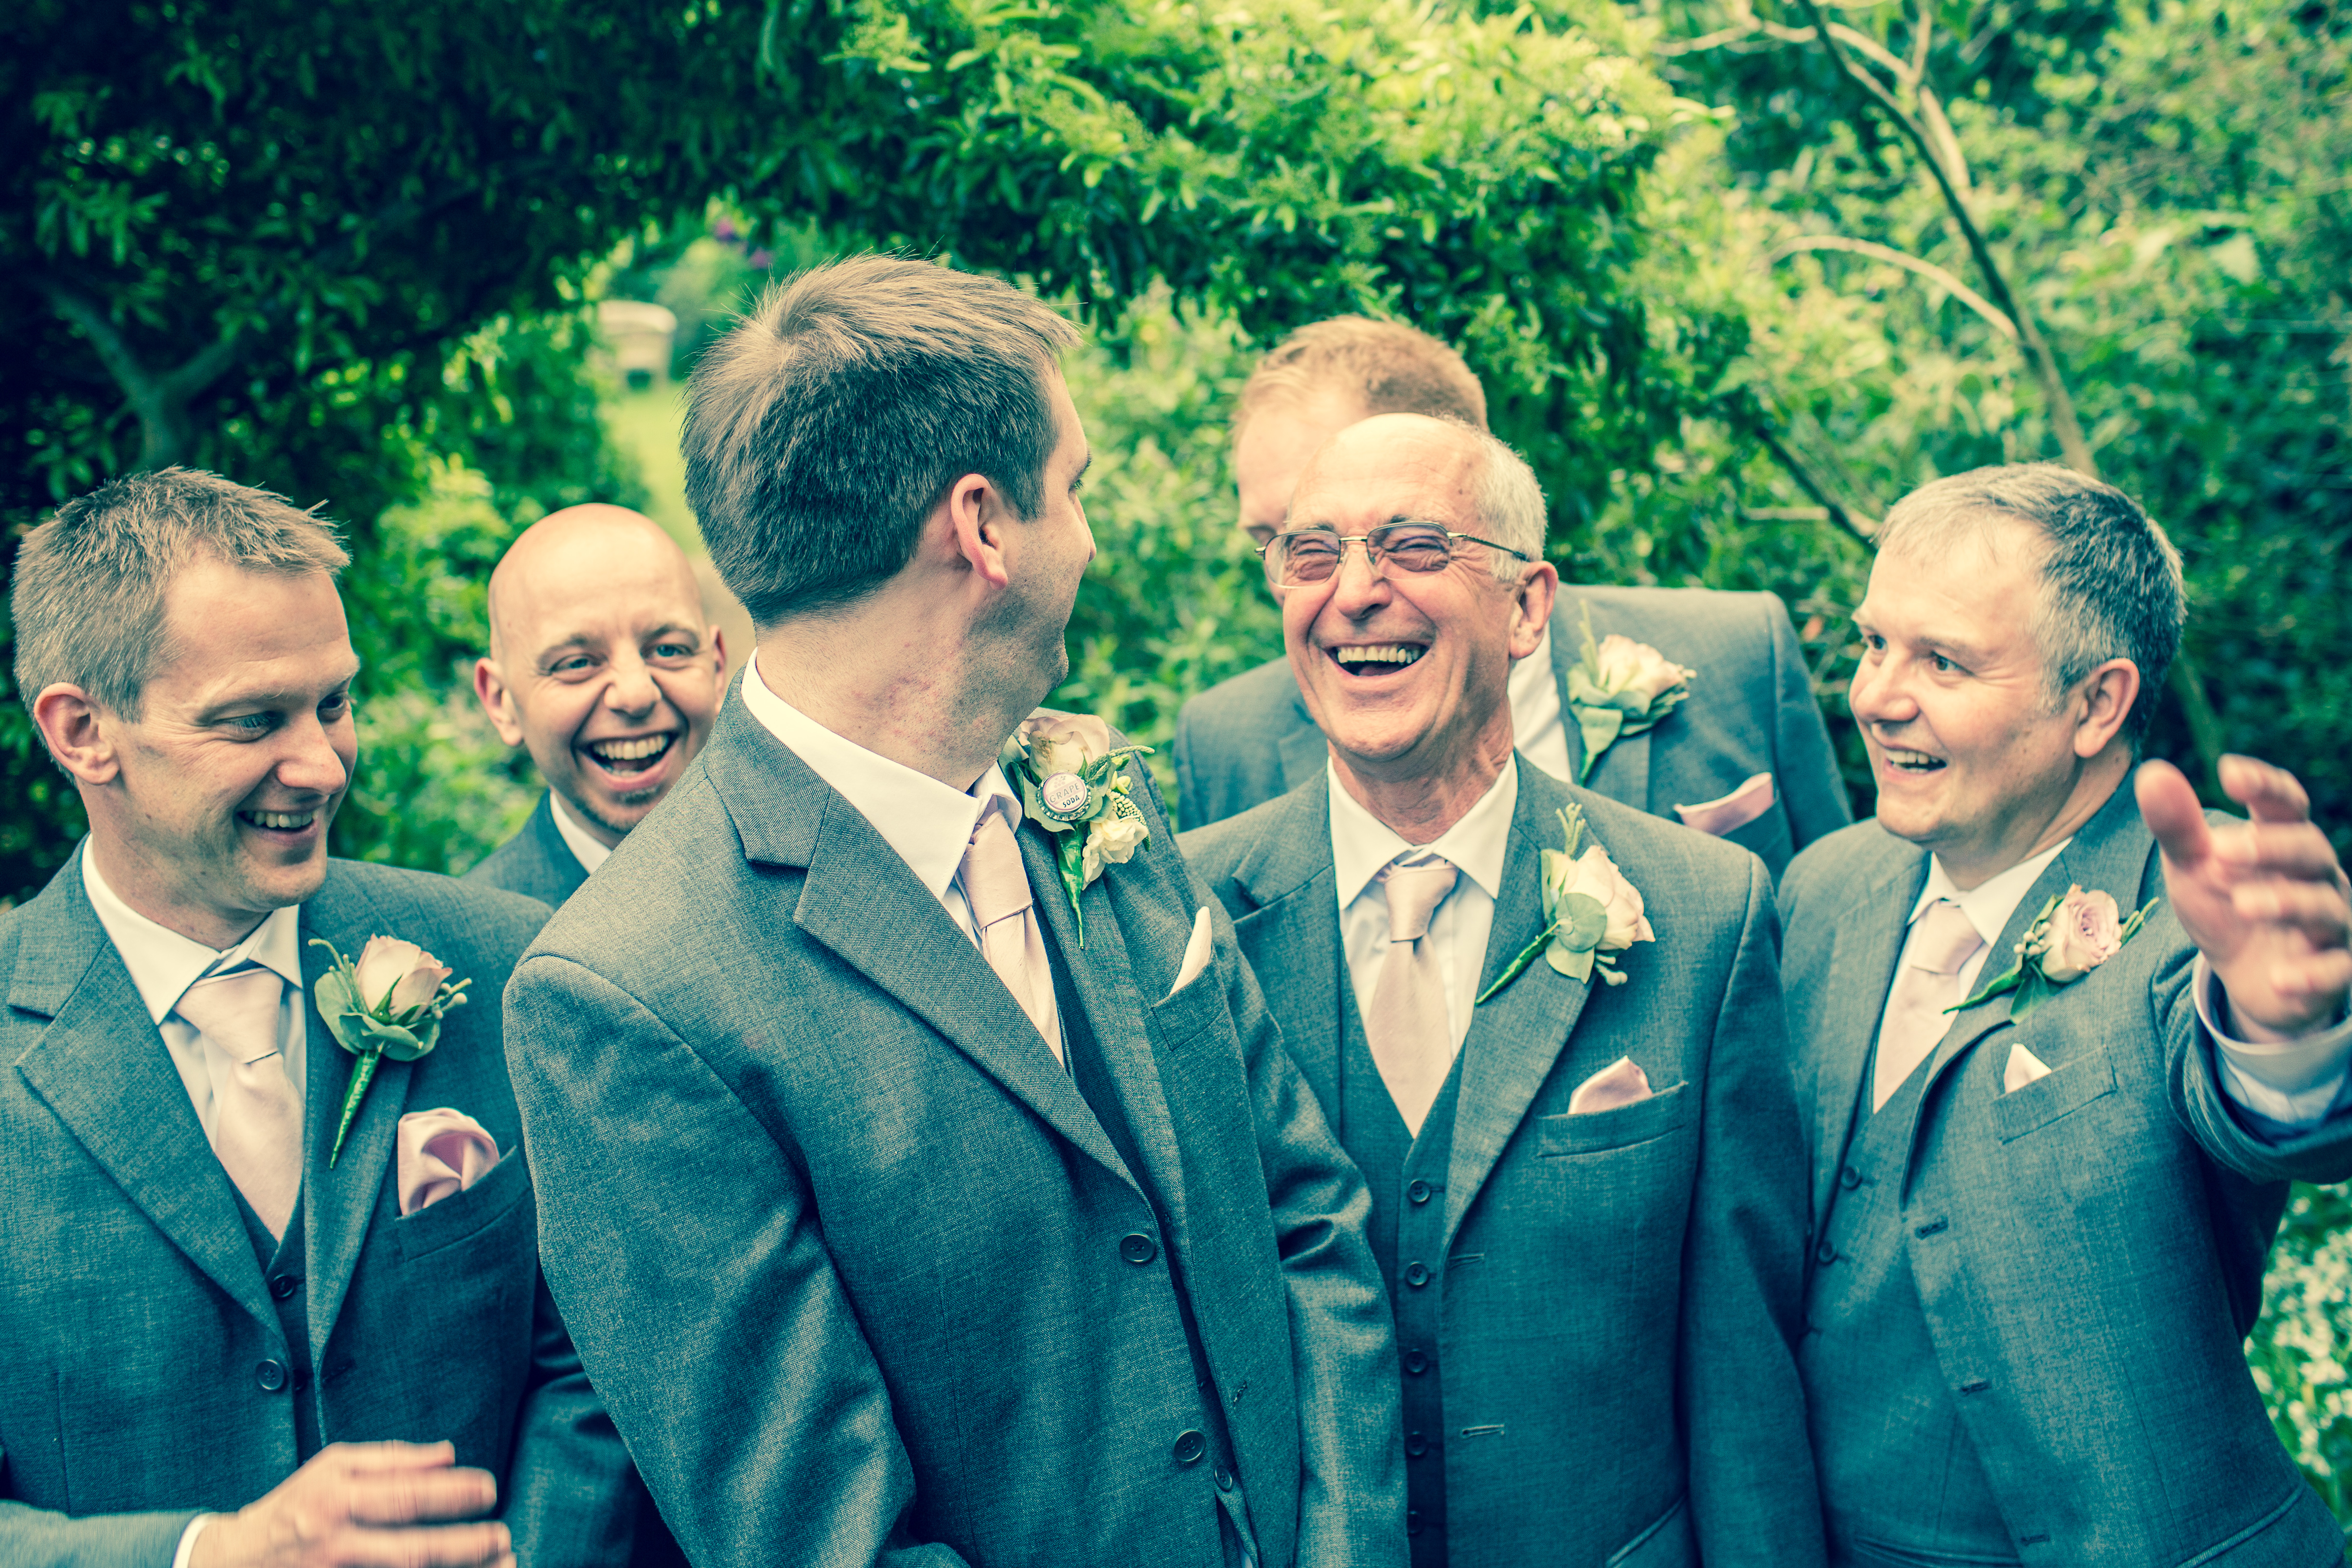 Elegant Wedding At Stanwell House Hotel In Hampshire With Bride In ...